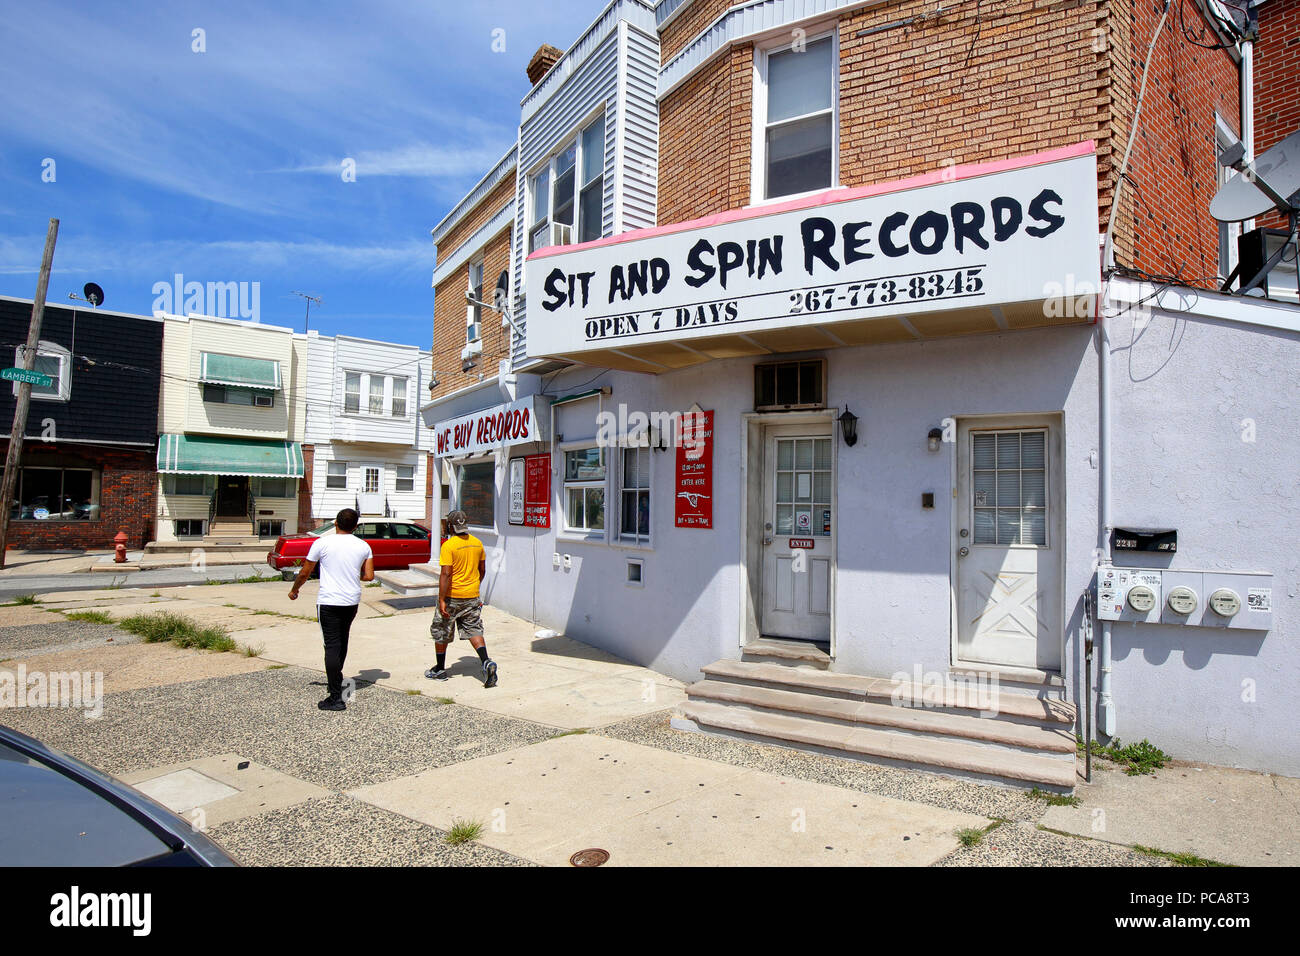 Sit and Spin Records, 2243 S Lambert St, Philadelphia, PA